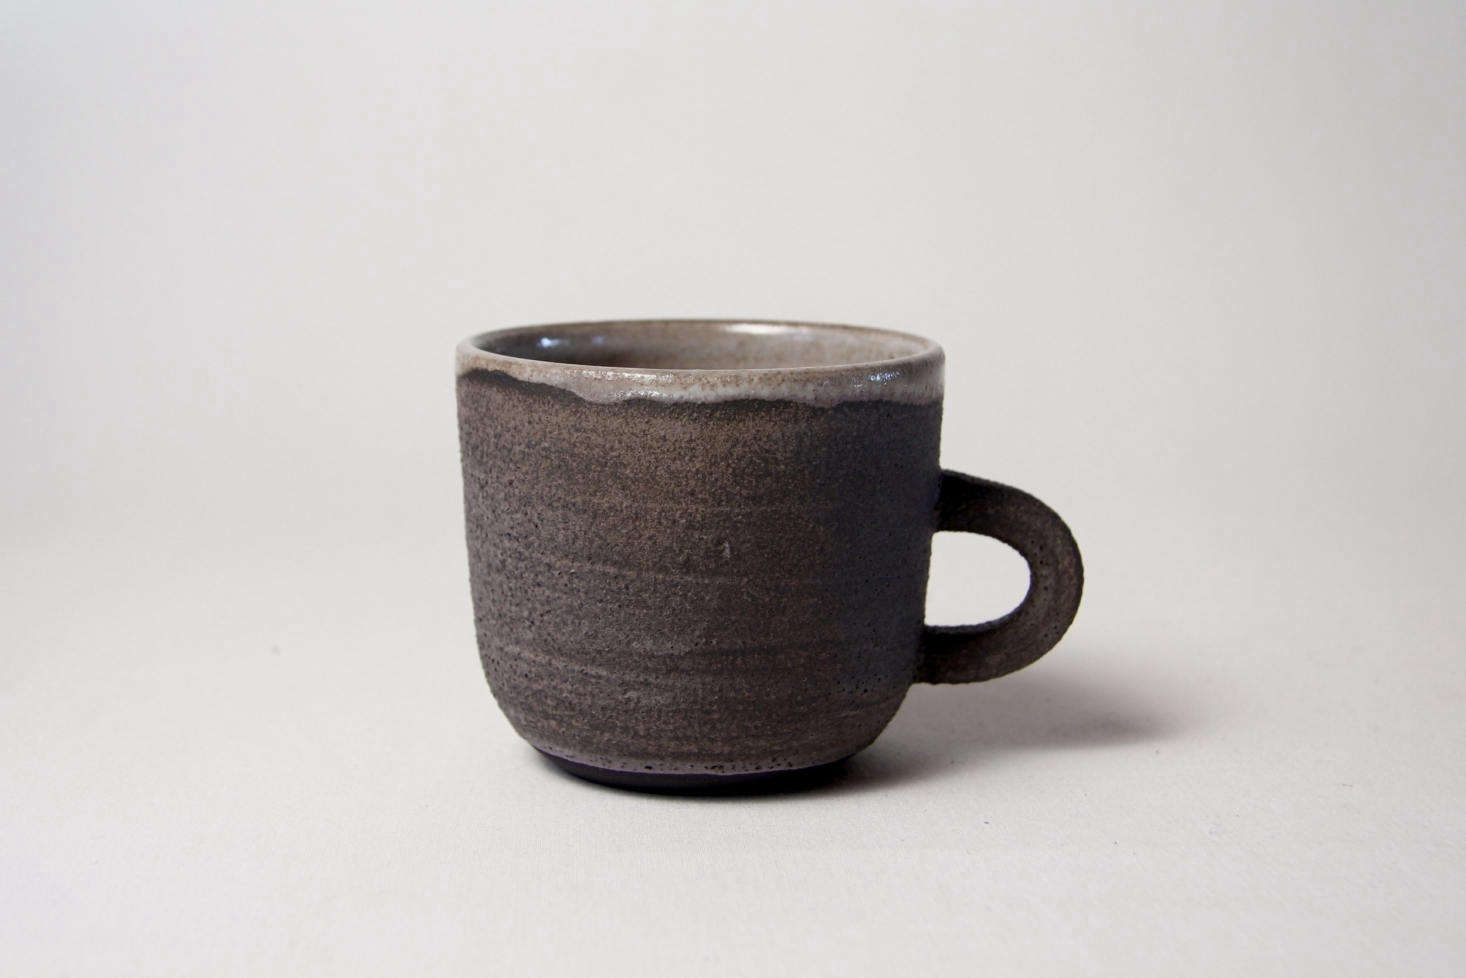 In the coastal community of Lincolnville, Maine, ceramicist Ariela Kuh of ANK Ceramics handcrafts tableware in a charming studio and finishes each piece with glazes mixed in small batches. Shown above is her Black Sand Mug, whose rough texture and purple-black glaze are evocative of its namesake.